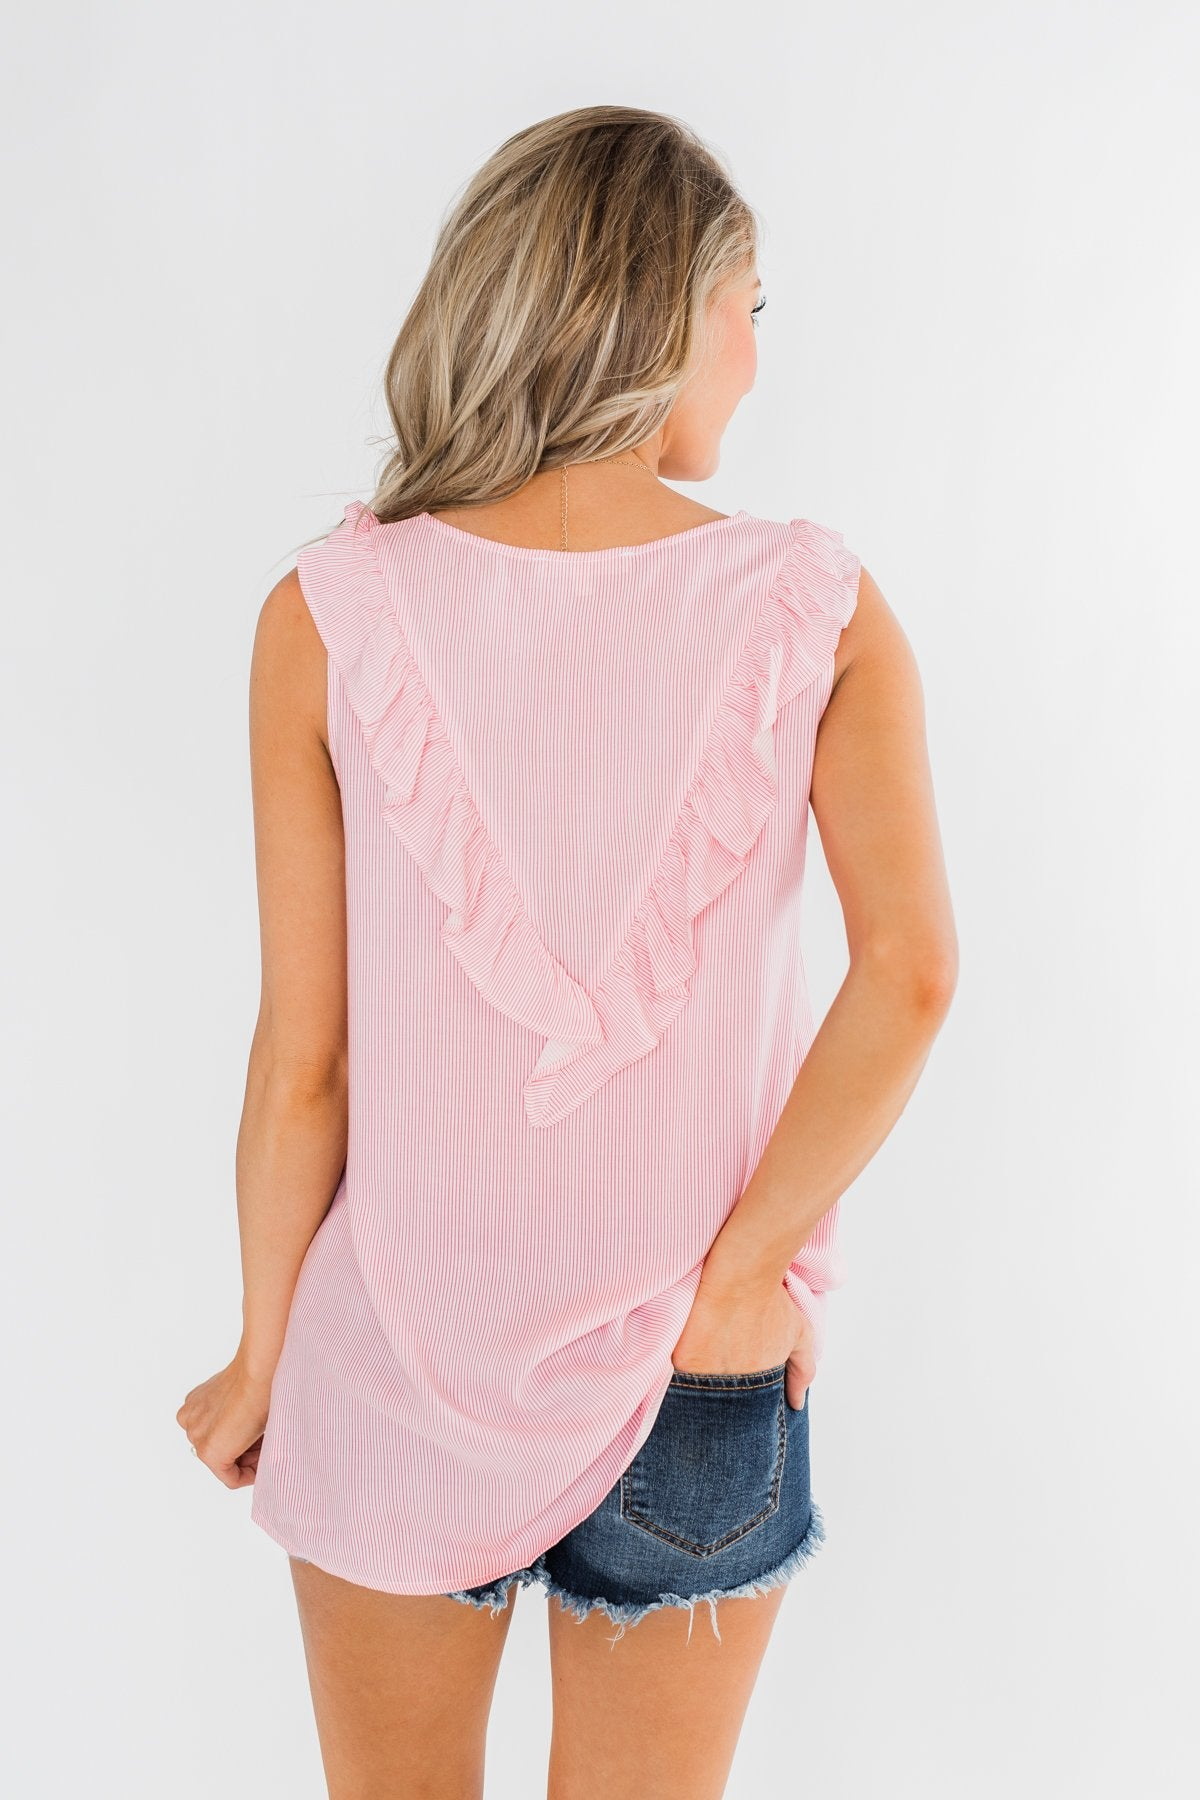 All Eyes On Me Striped Ruffle Tank Top- Pink